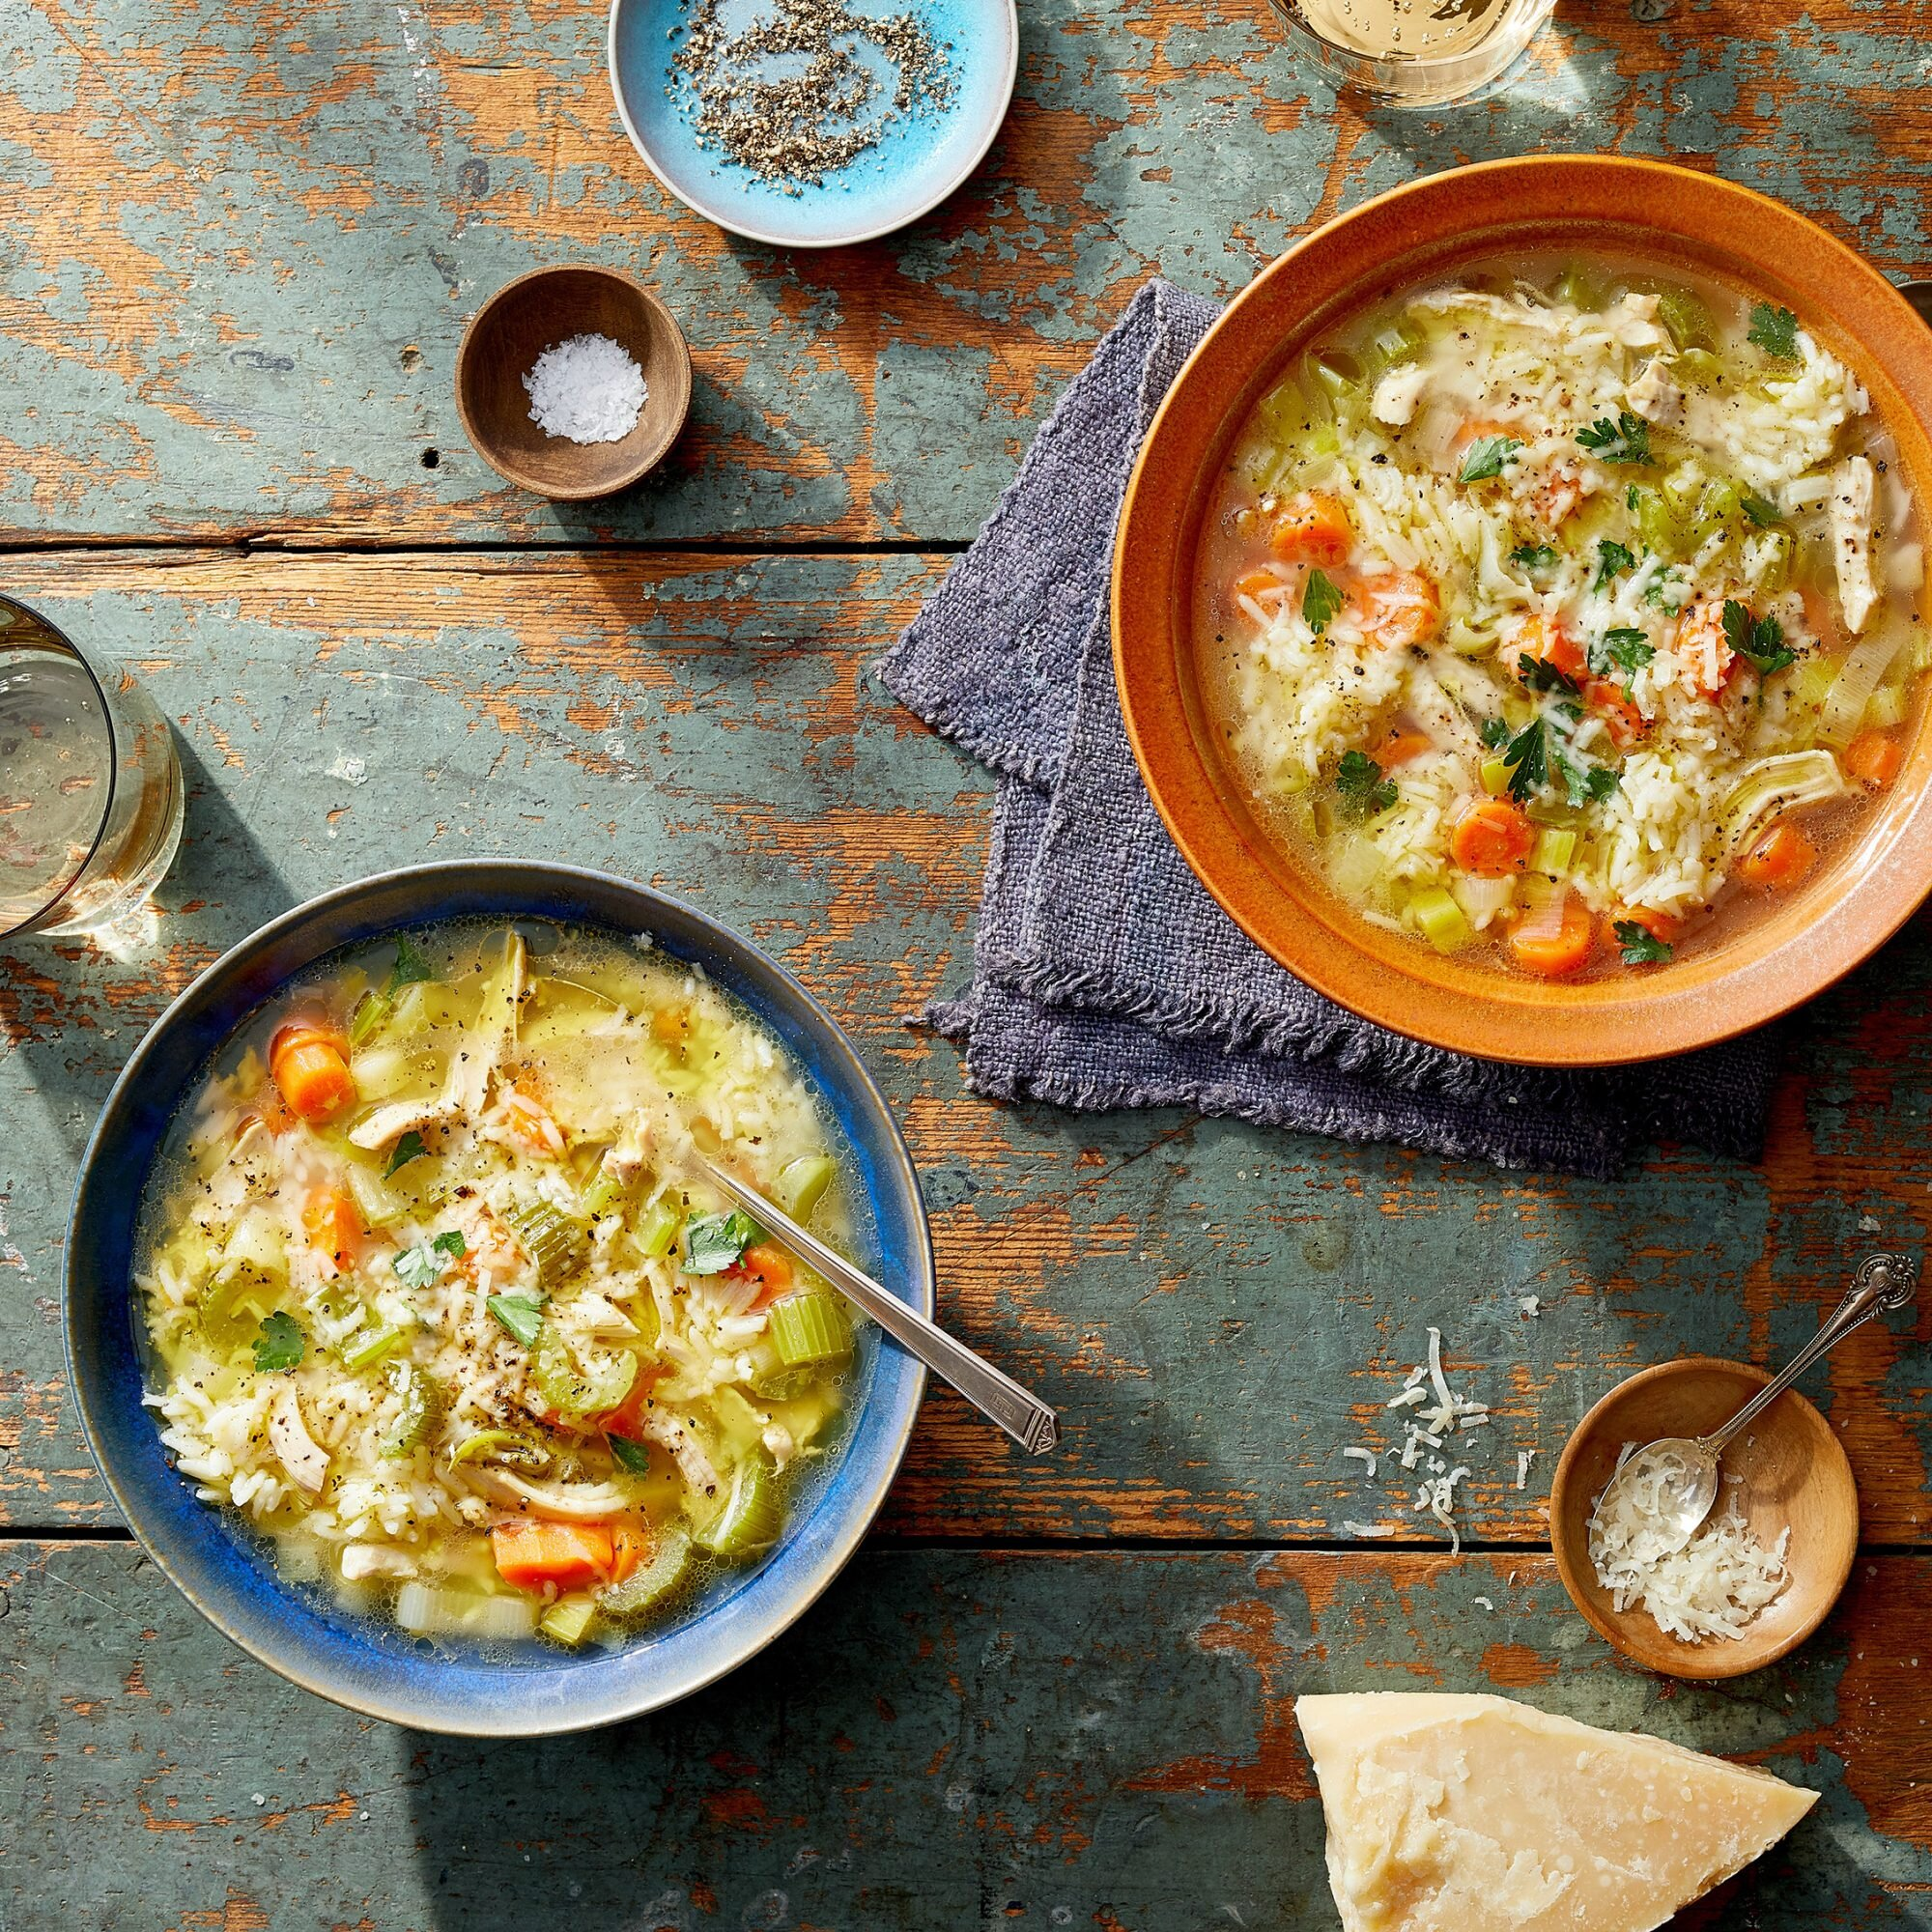 18 Chicken Soup And Stew Recipes That Are Sure To Comfort Martha Stewart